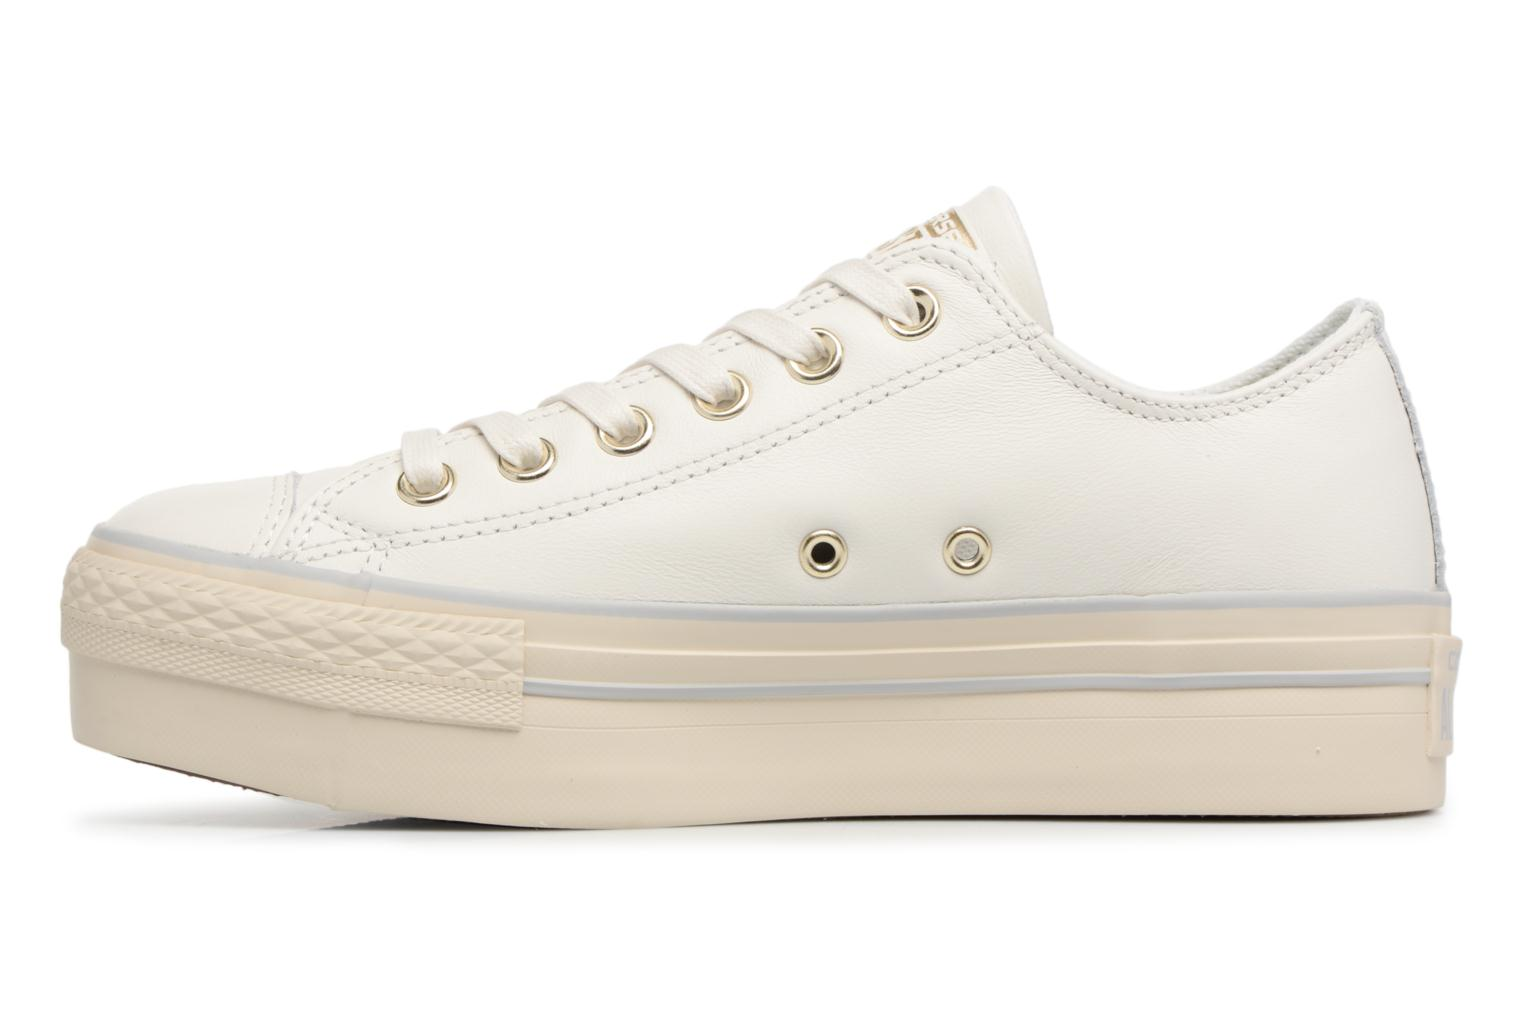 CTAS PLATFORM OX STAR STAR WHITE/LIGHT GOLD